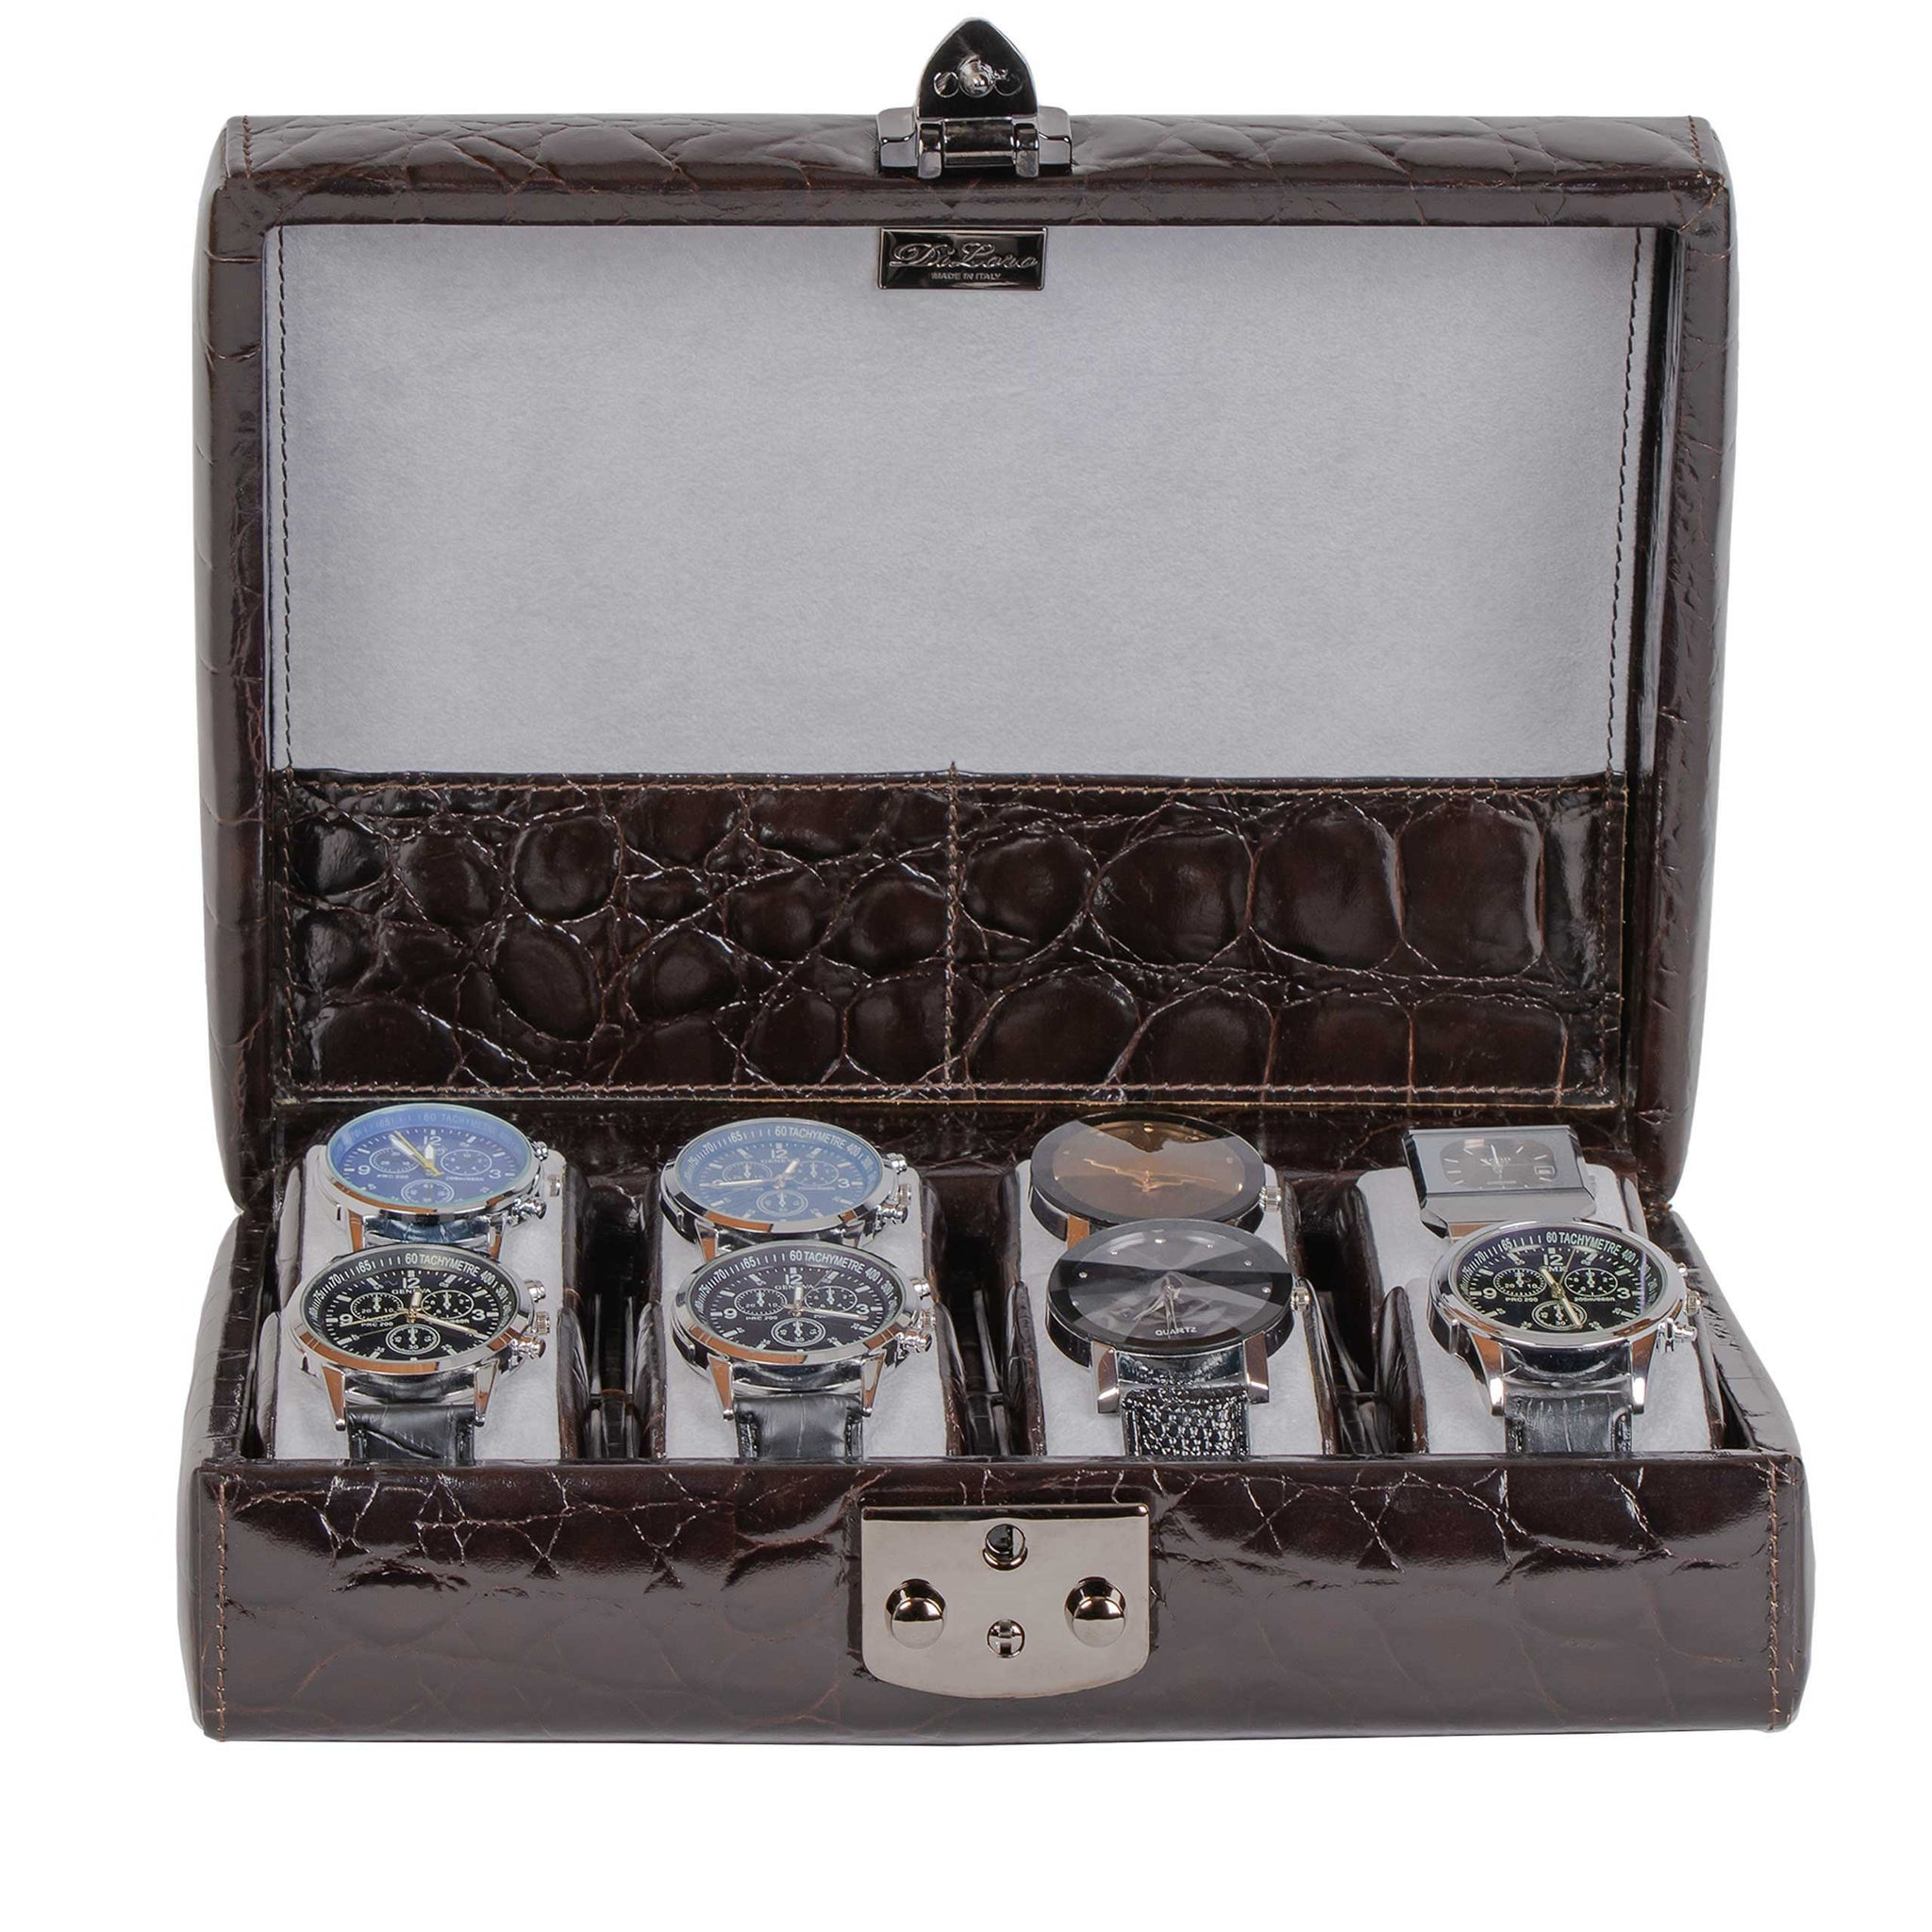 DiLoro Italian Leather Travel Watch Case Holds Eight Watches Brown Croc Print - Open Front (watches not included)